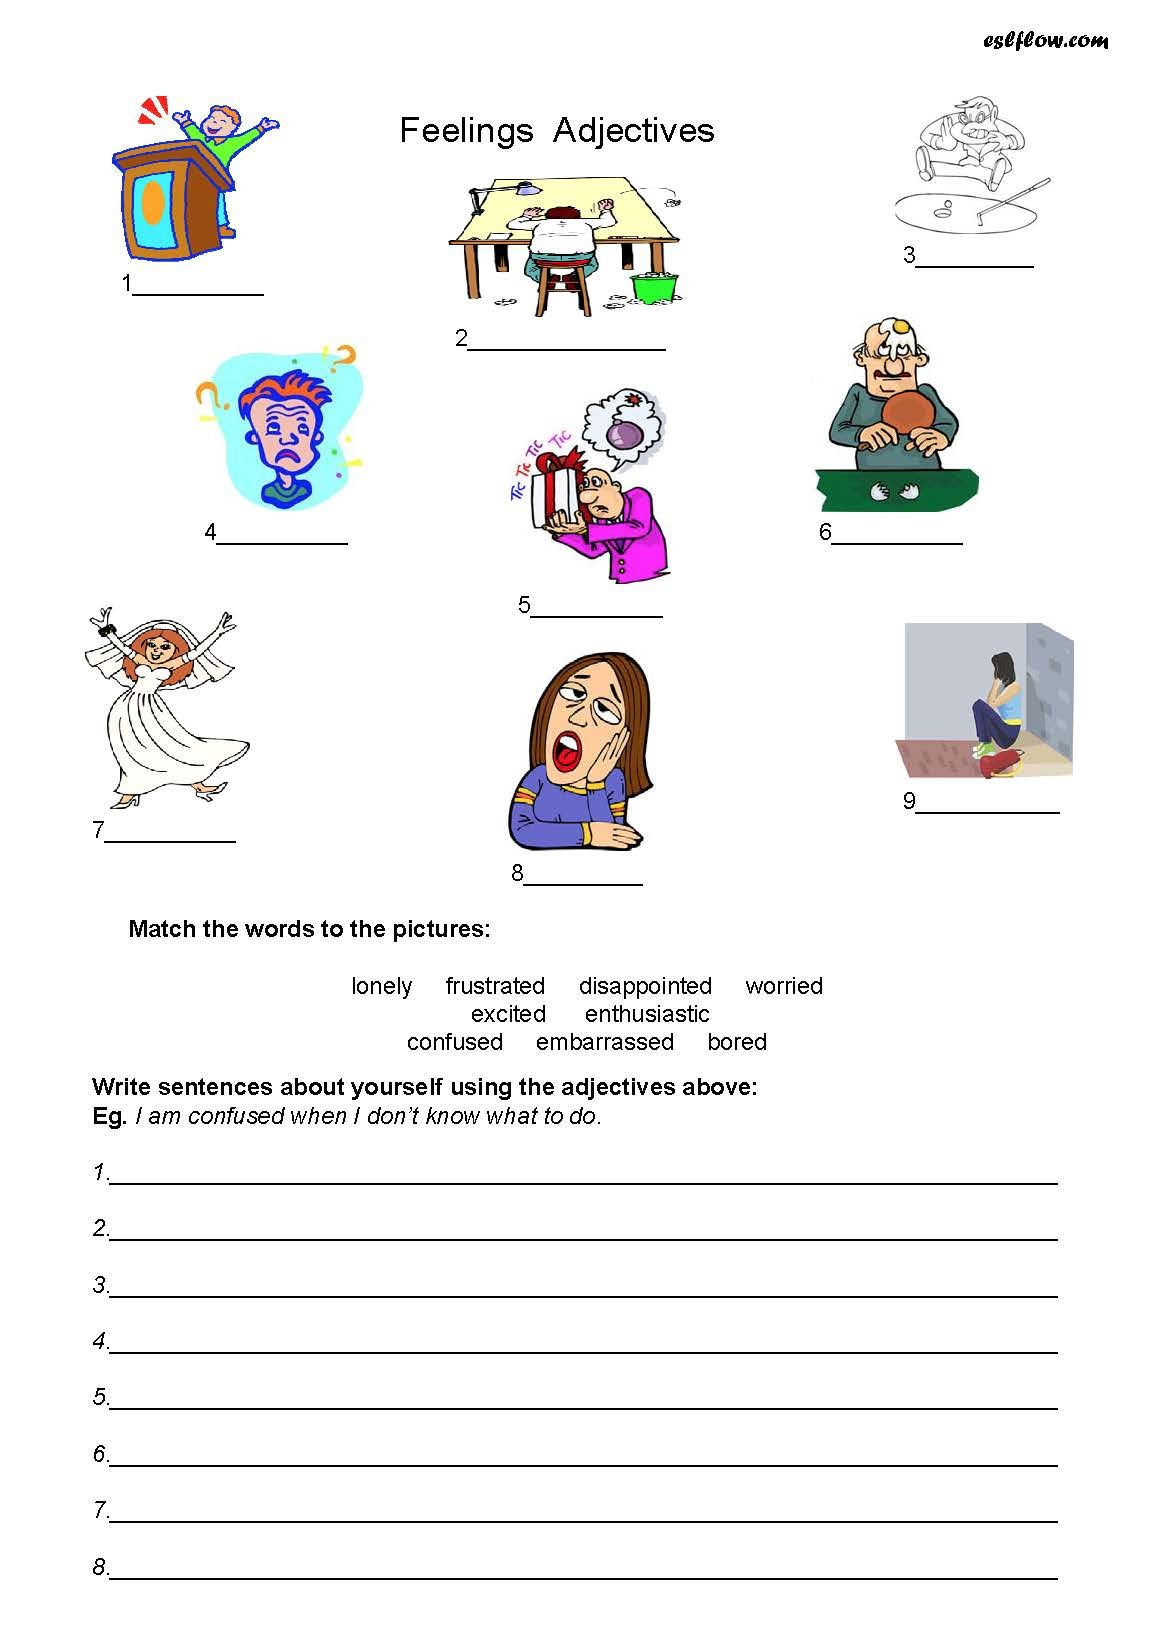 Feelings Adjectives Worksheet